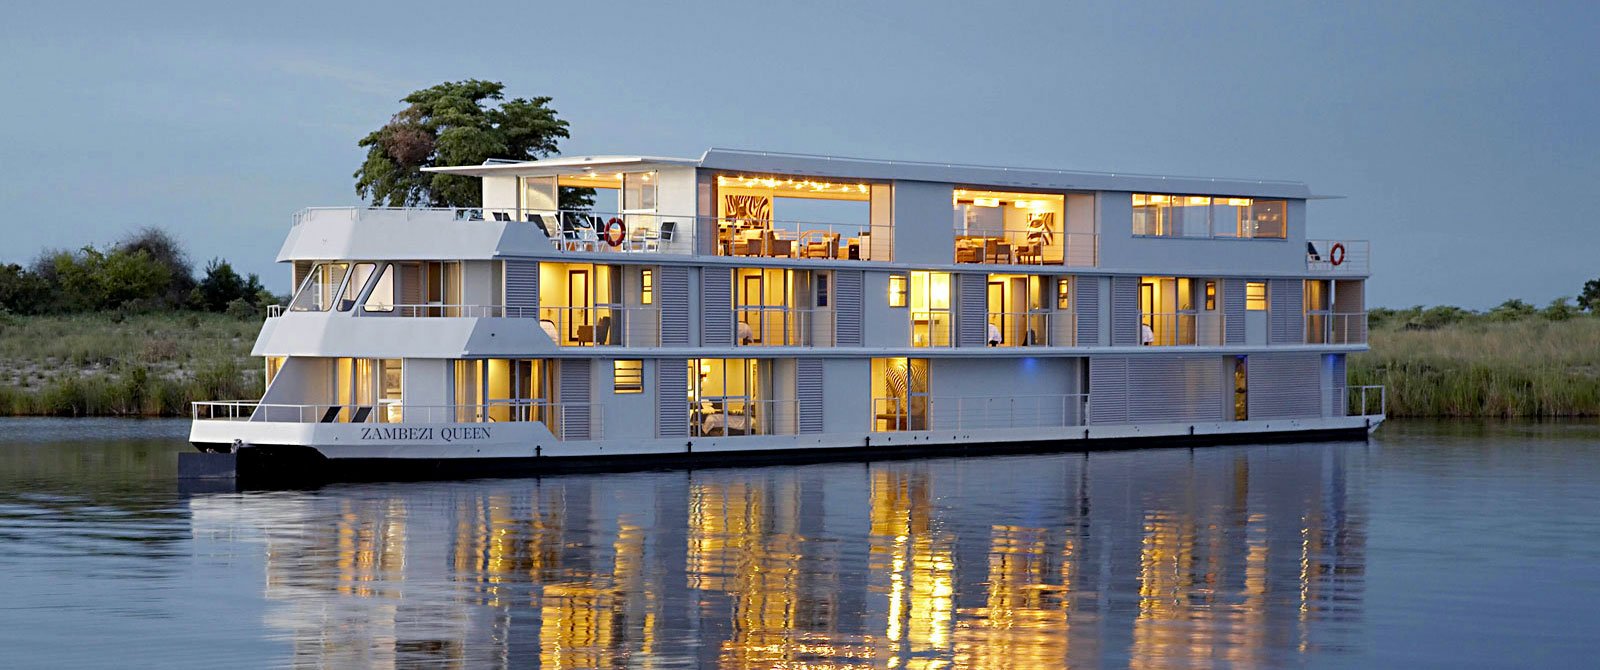 Zambezi Queen Cruising the Chobe River - Best Luxury Africa Cruises